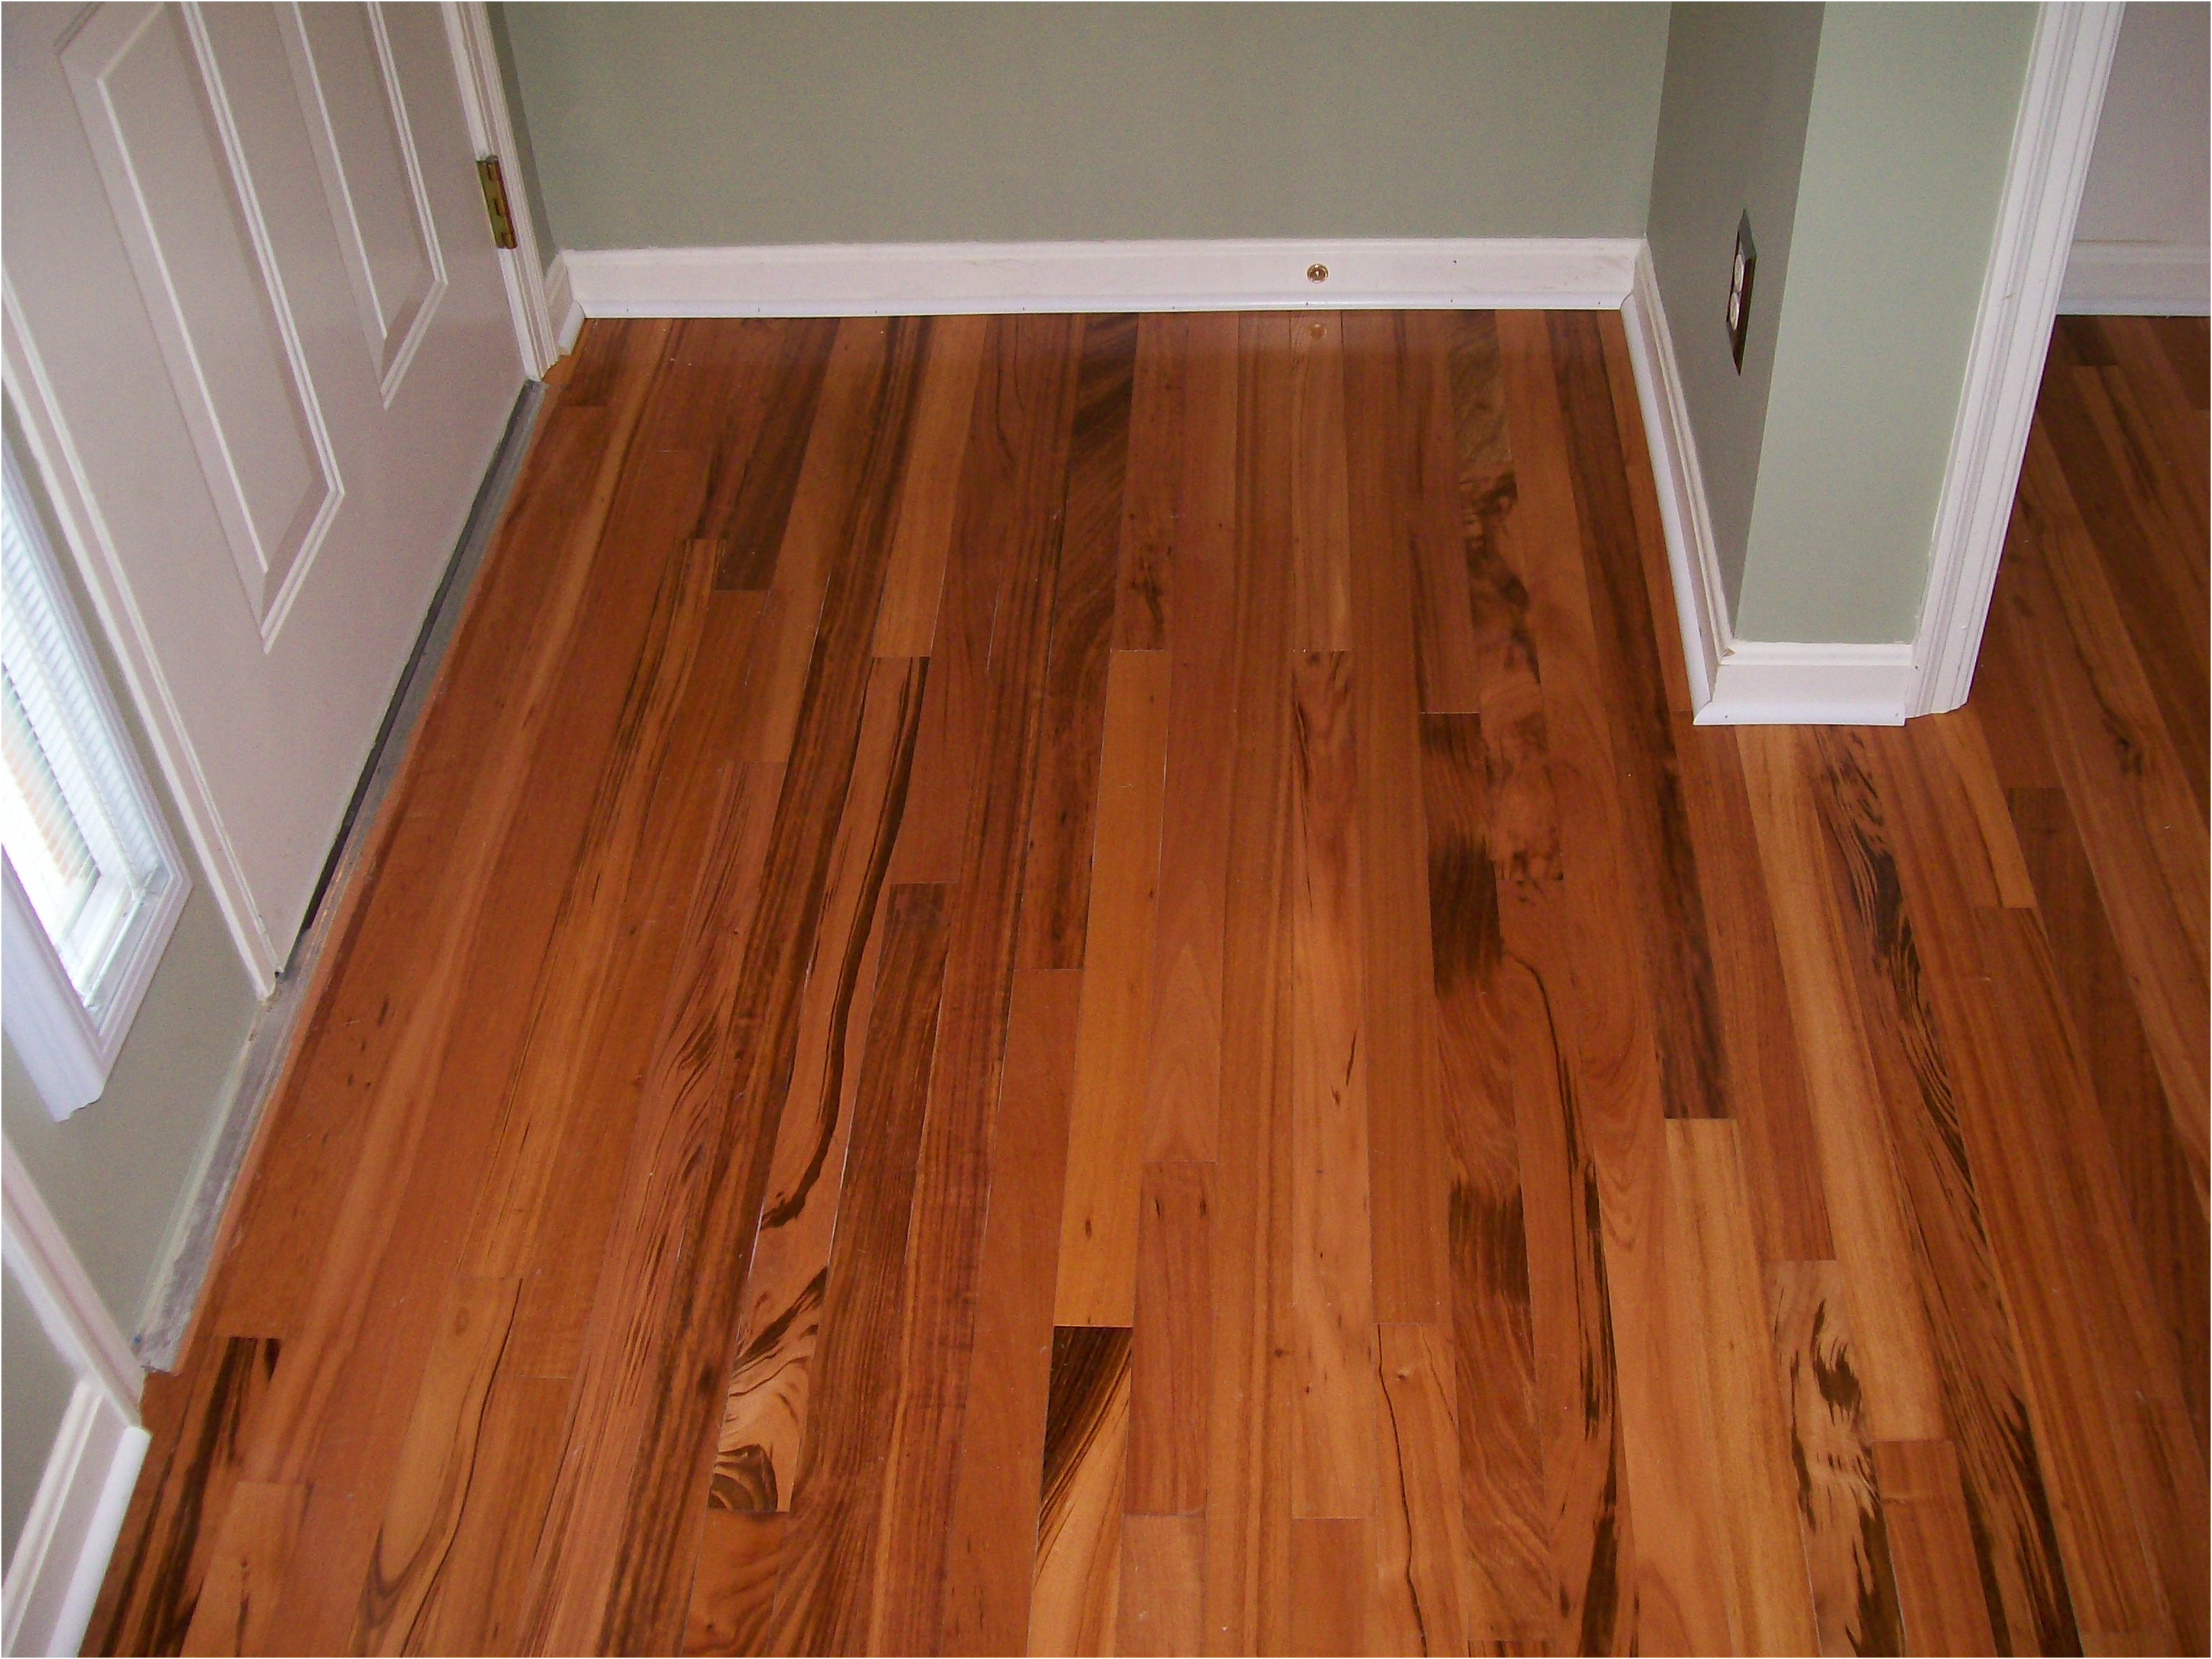 Somerset Red Oak Hardwood Flooring Of Unfinished Red Oak Flooring Lowes Fresh Floor Hardwood Flooring Cost Inside Unfinished Red Oak Flooring Lowes Fresh Floor Hardwood Flooring Cost Estimator Per Sq Ft Installed to